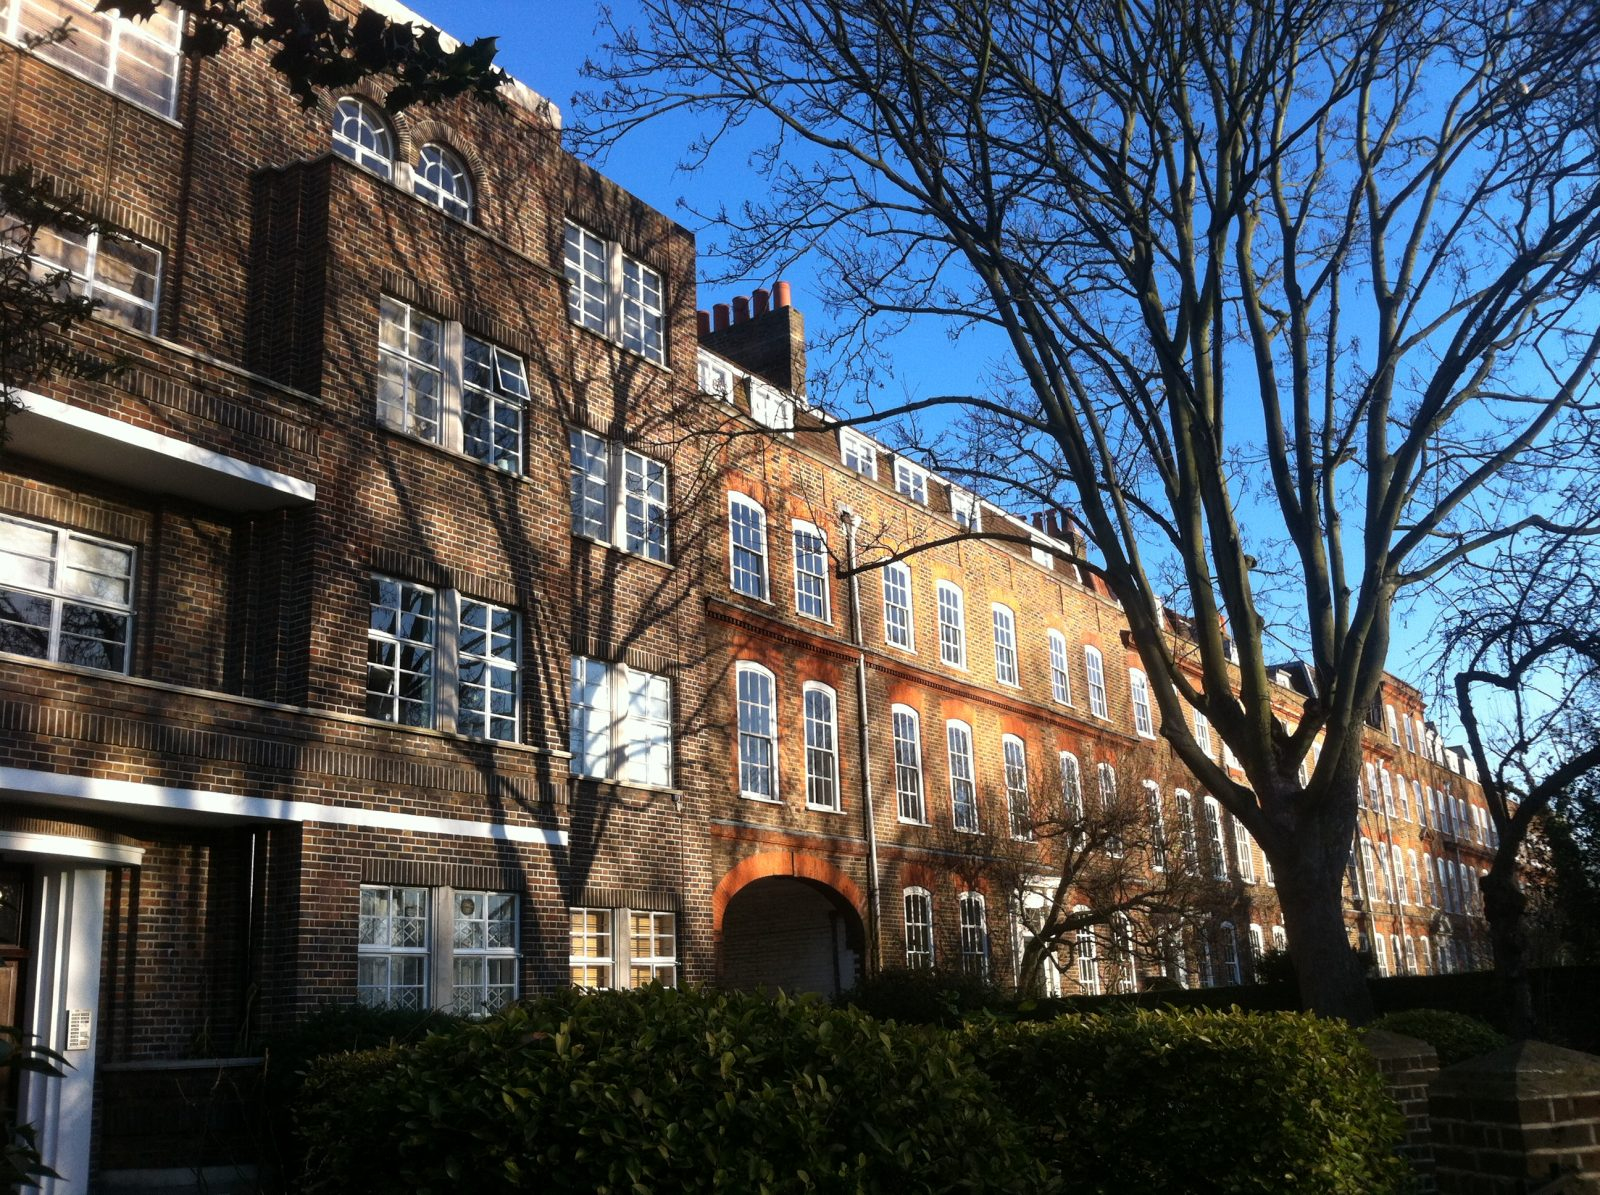 OU VIVRE A LONDRES RUBRIQUE CHOISIR SON STYLE ARTICLE MANSION BLOCK WEST HAMPSTEAD